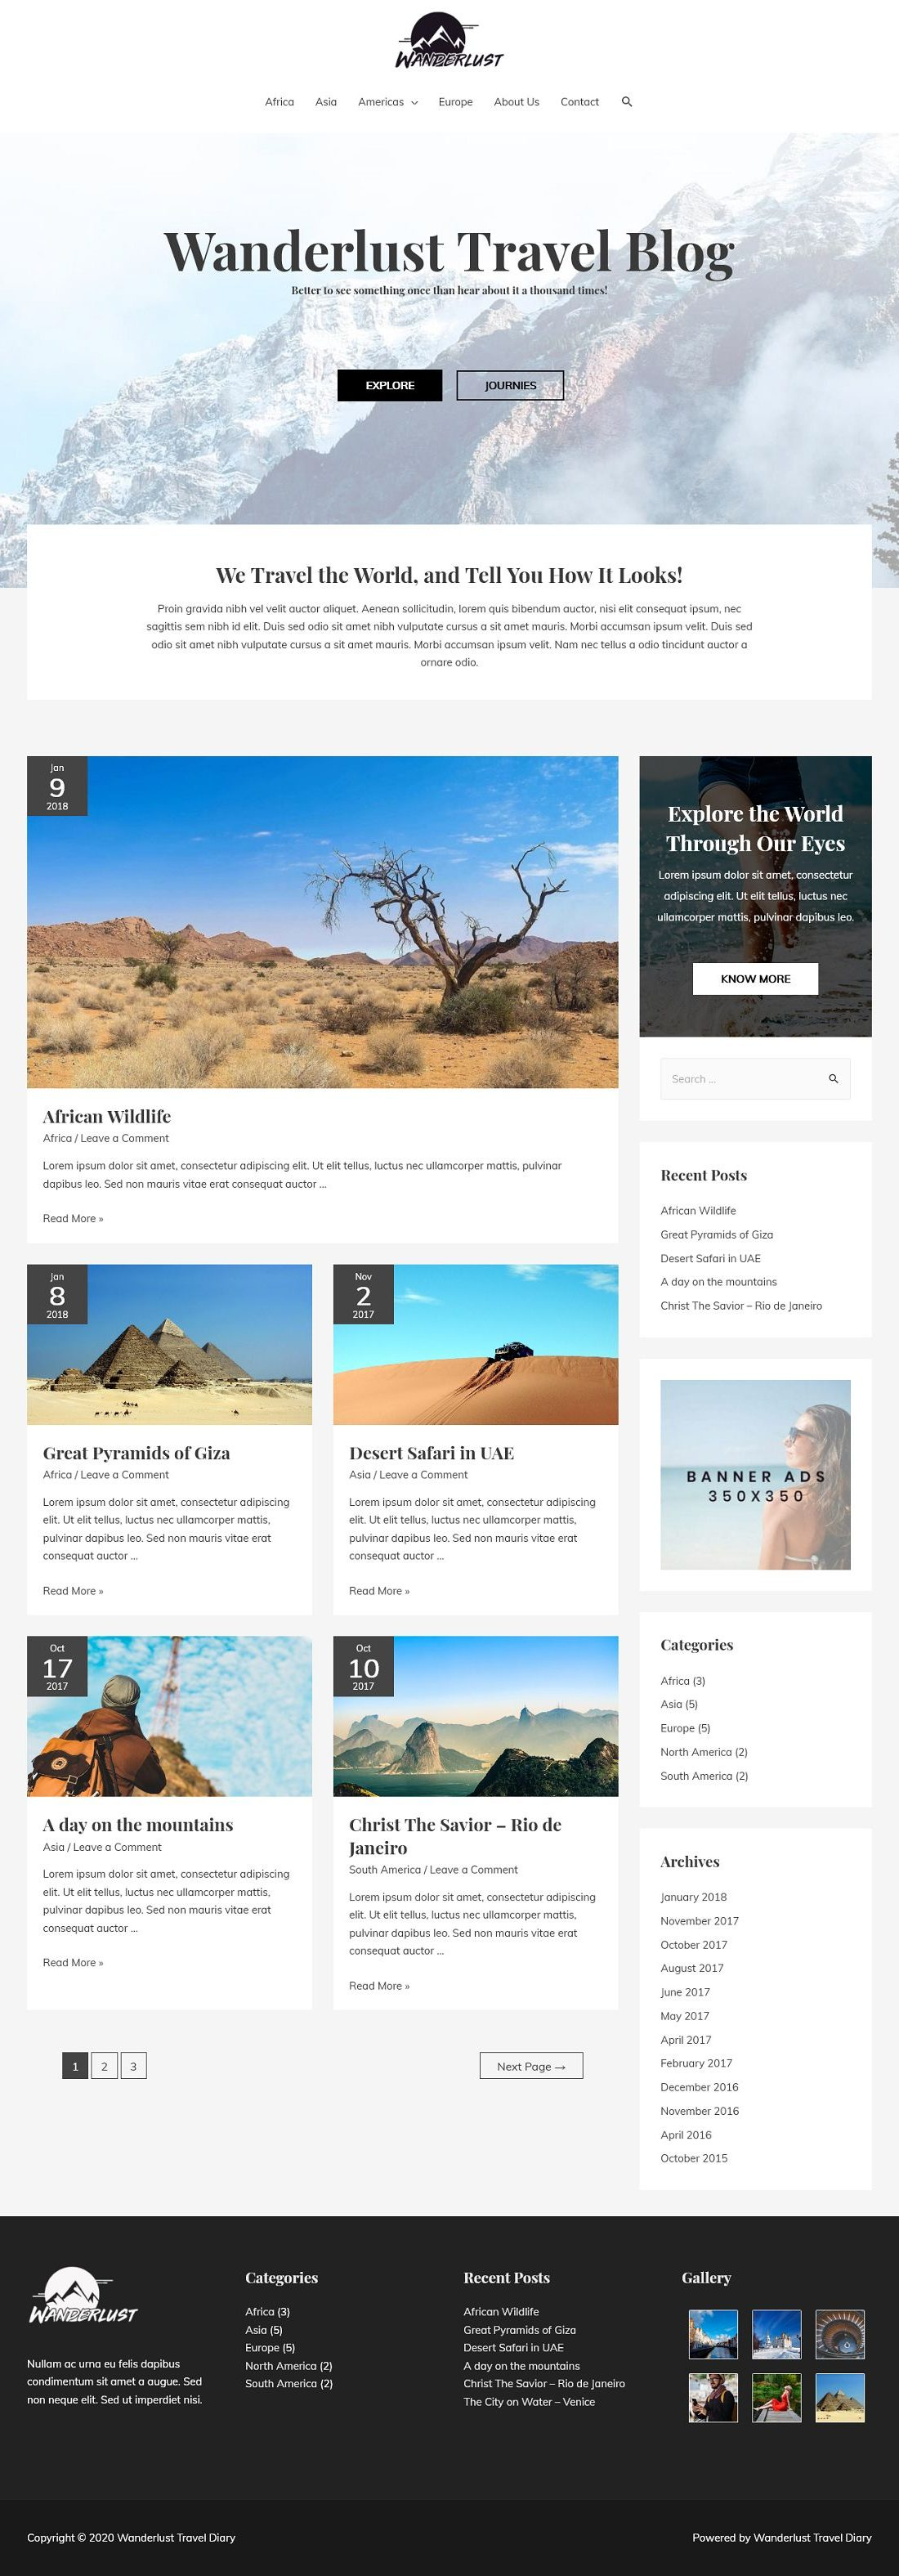 Wanderlust Travel Blog A Home Page 1280 x 3151